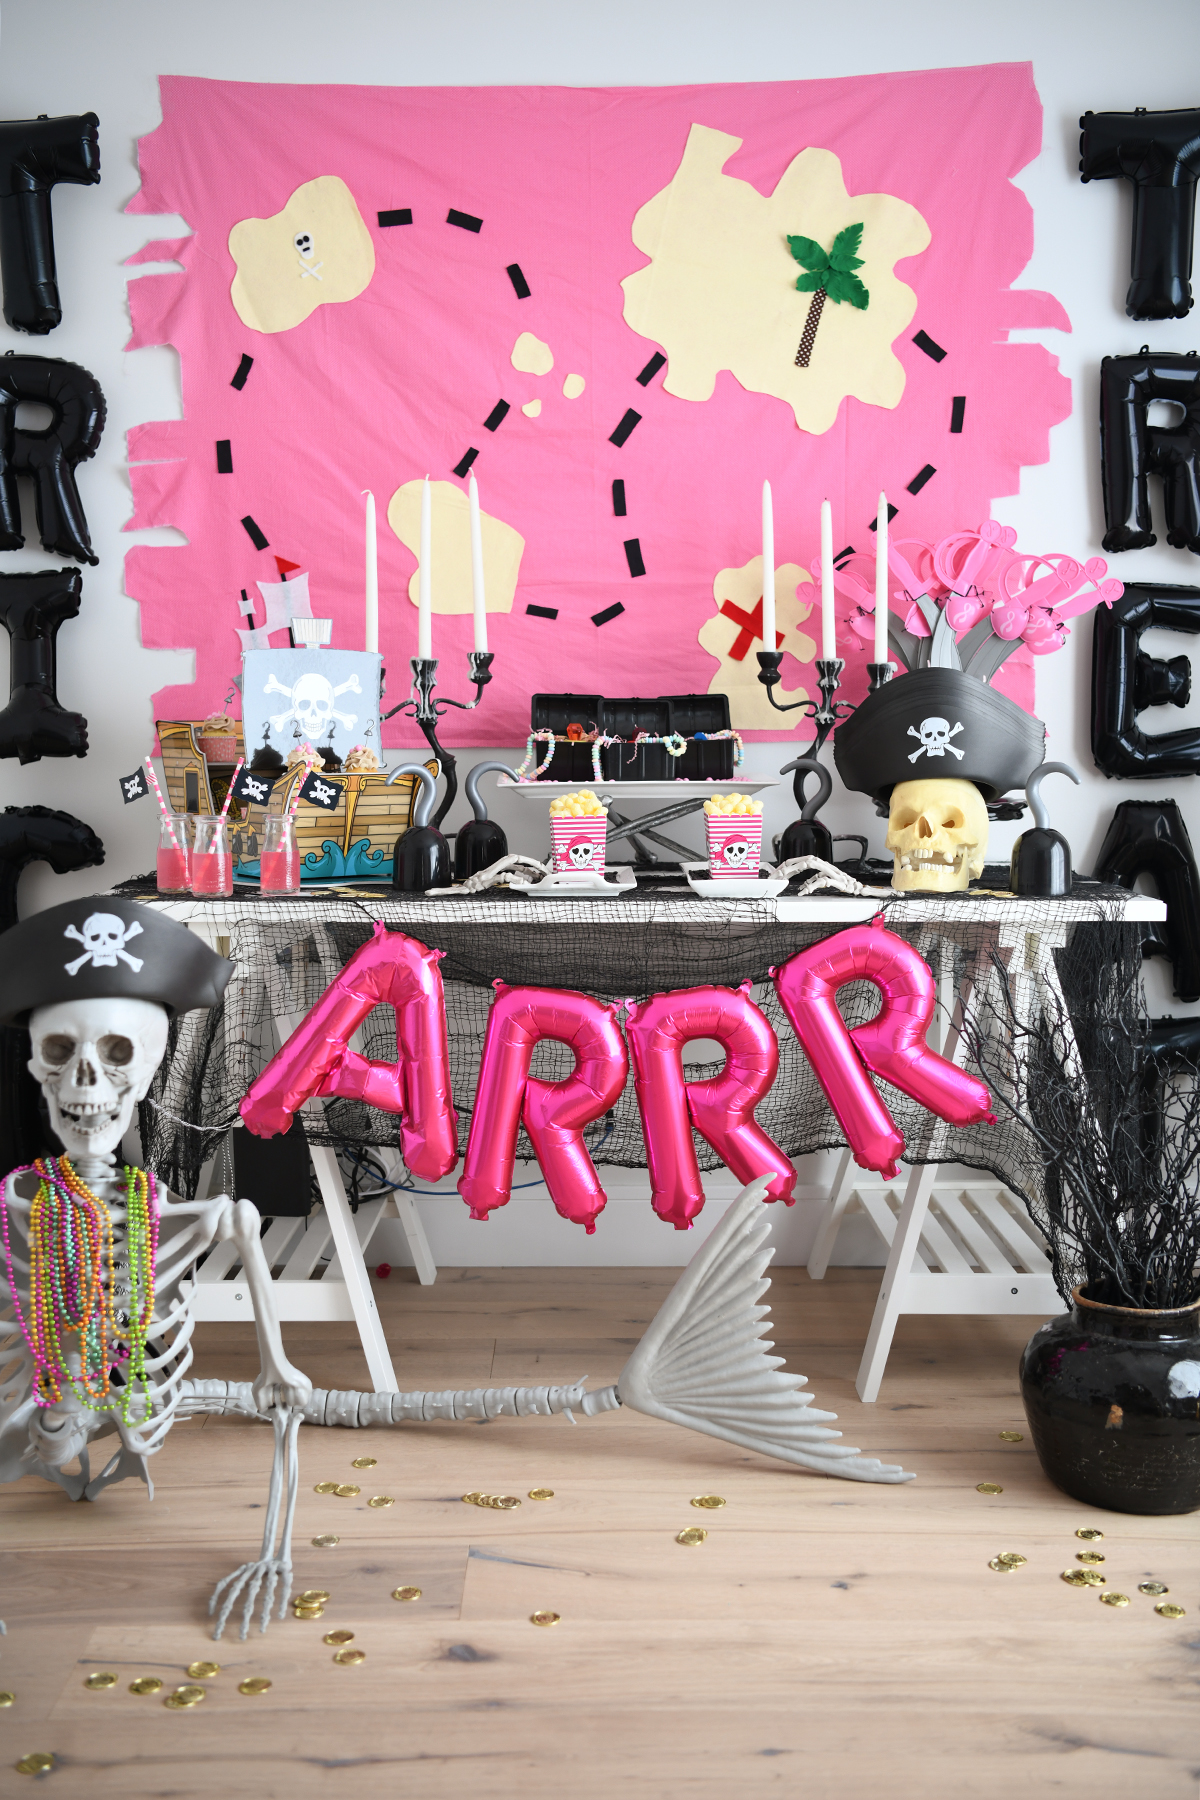 Pirate party ideas for halloween